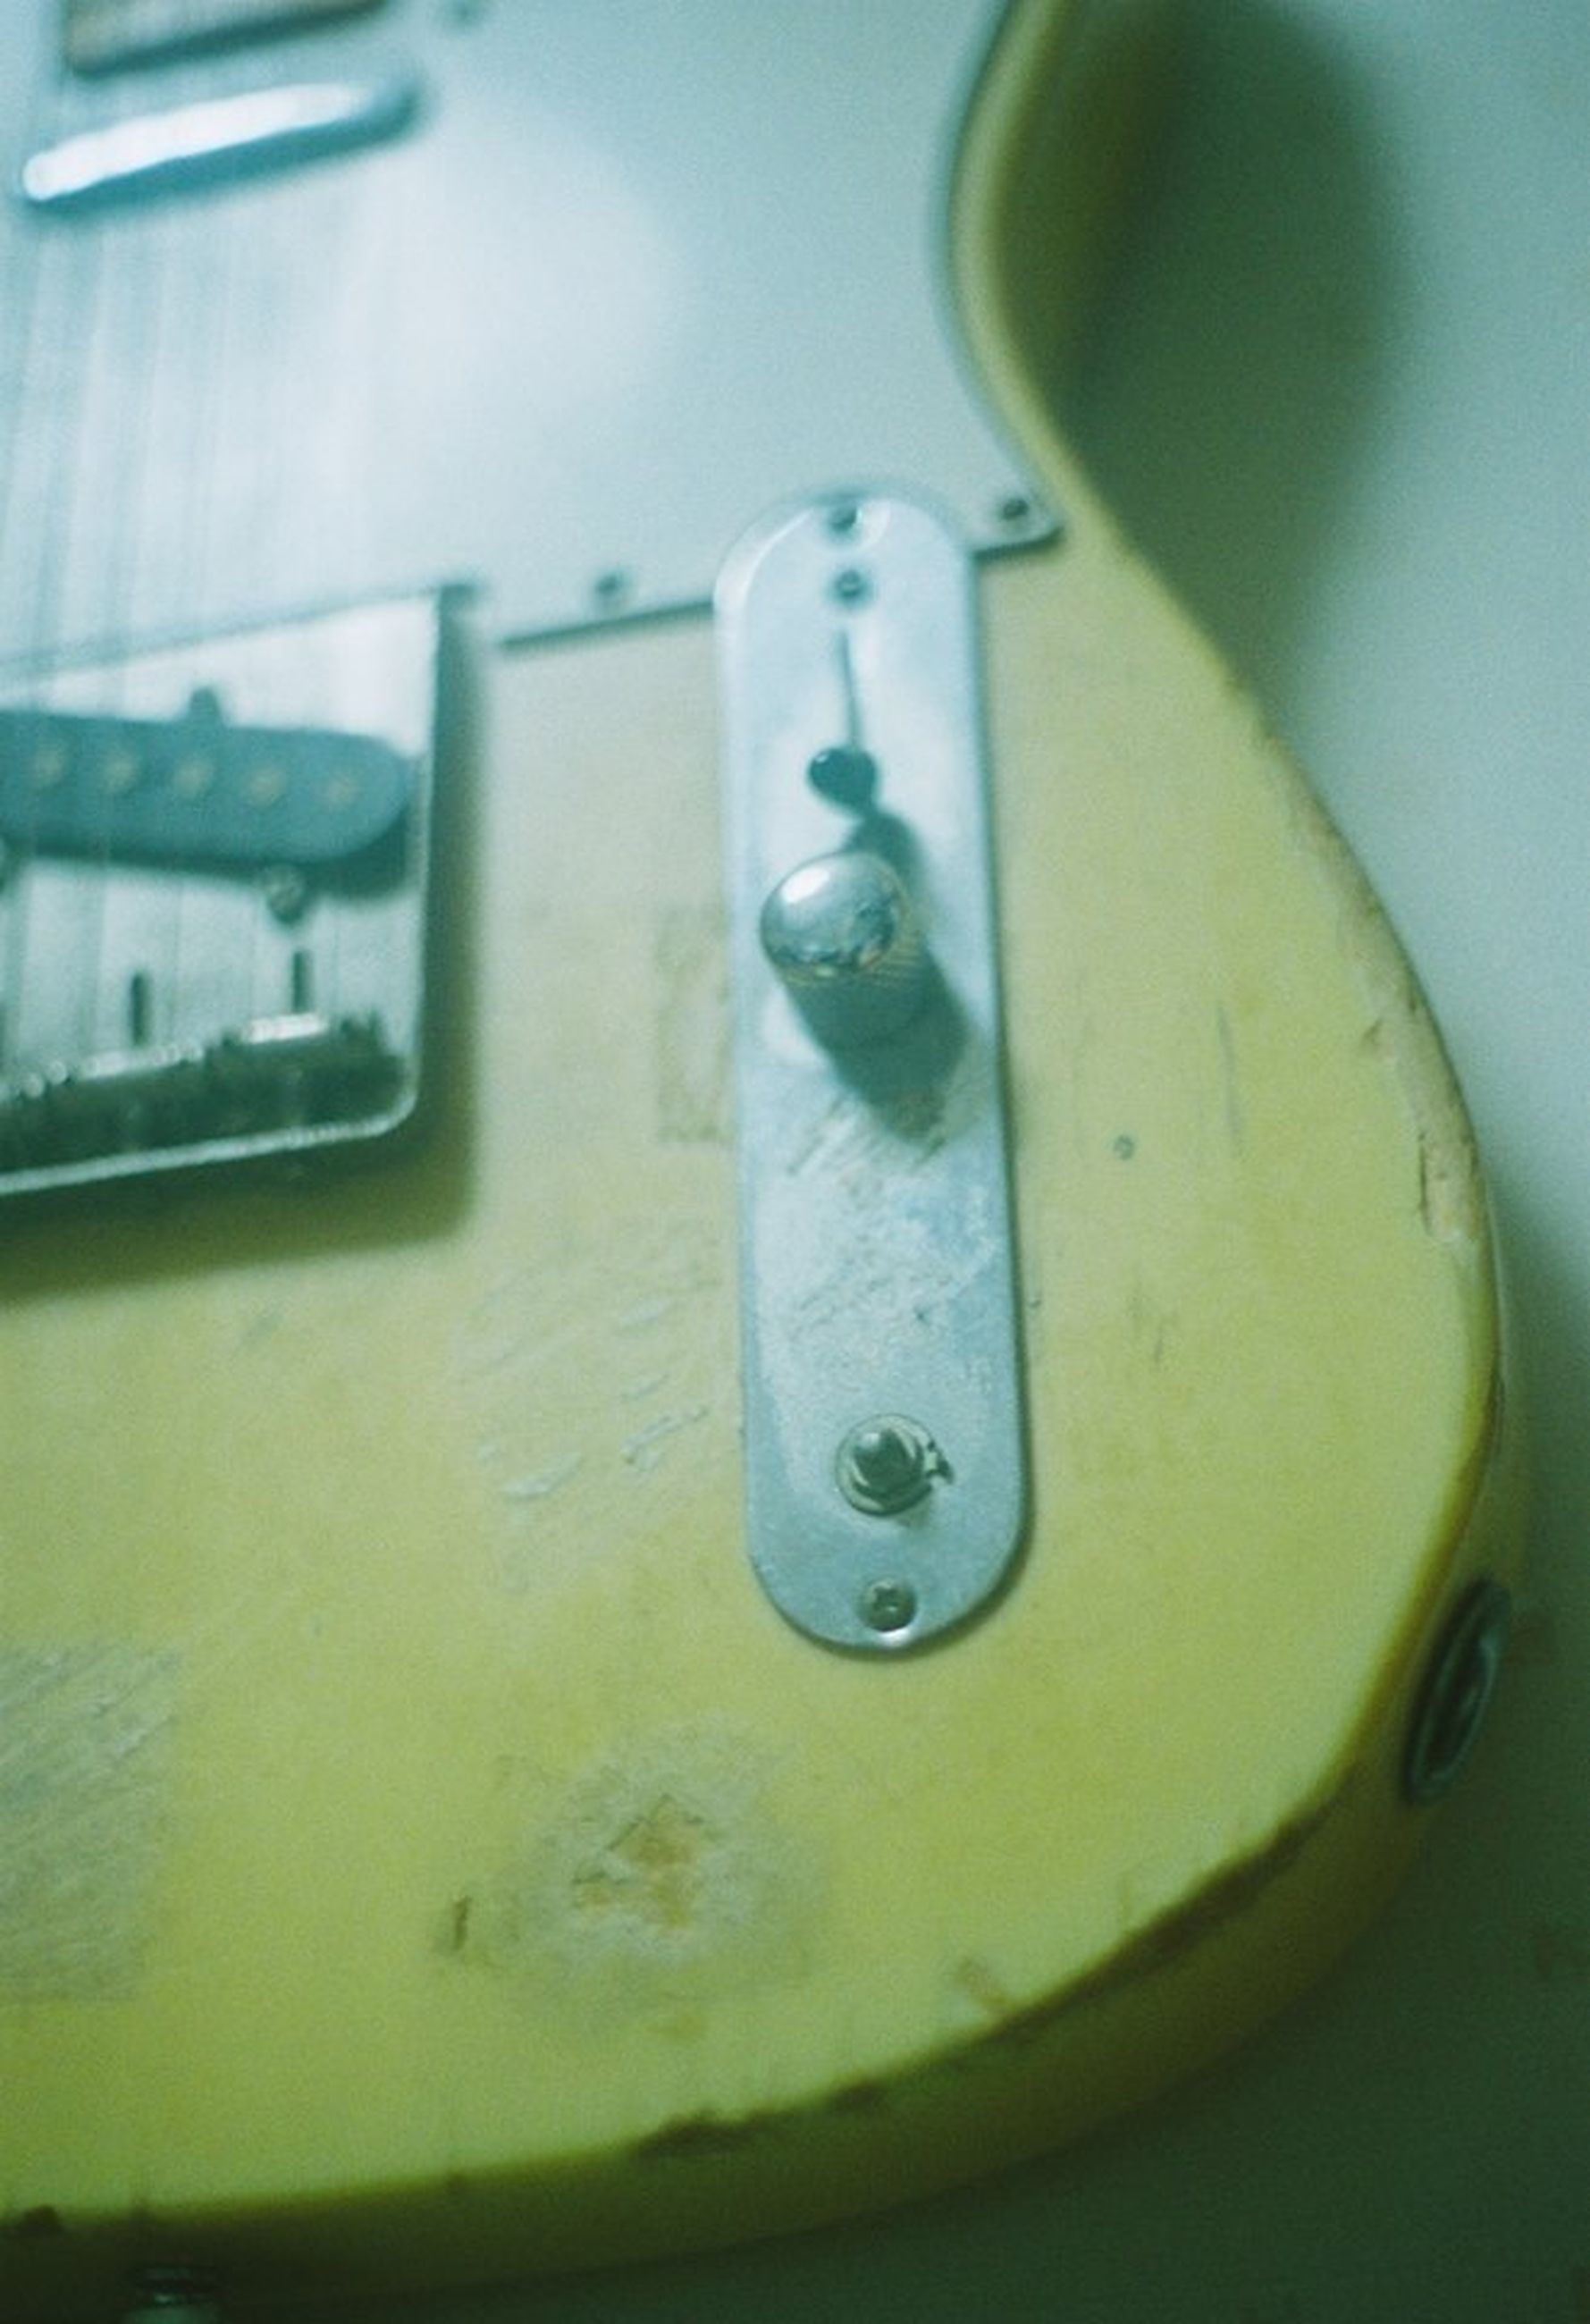 close-up, indoors, yellow, still life, metal, focus on foreground, no people, metallic, water, single object, plastic, selective focus, table, reflection, green color, equipment, day, high angle view, man made object, container